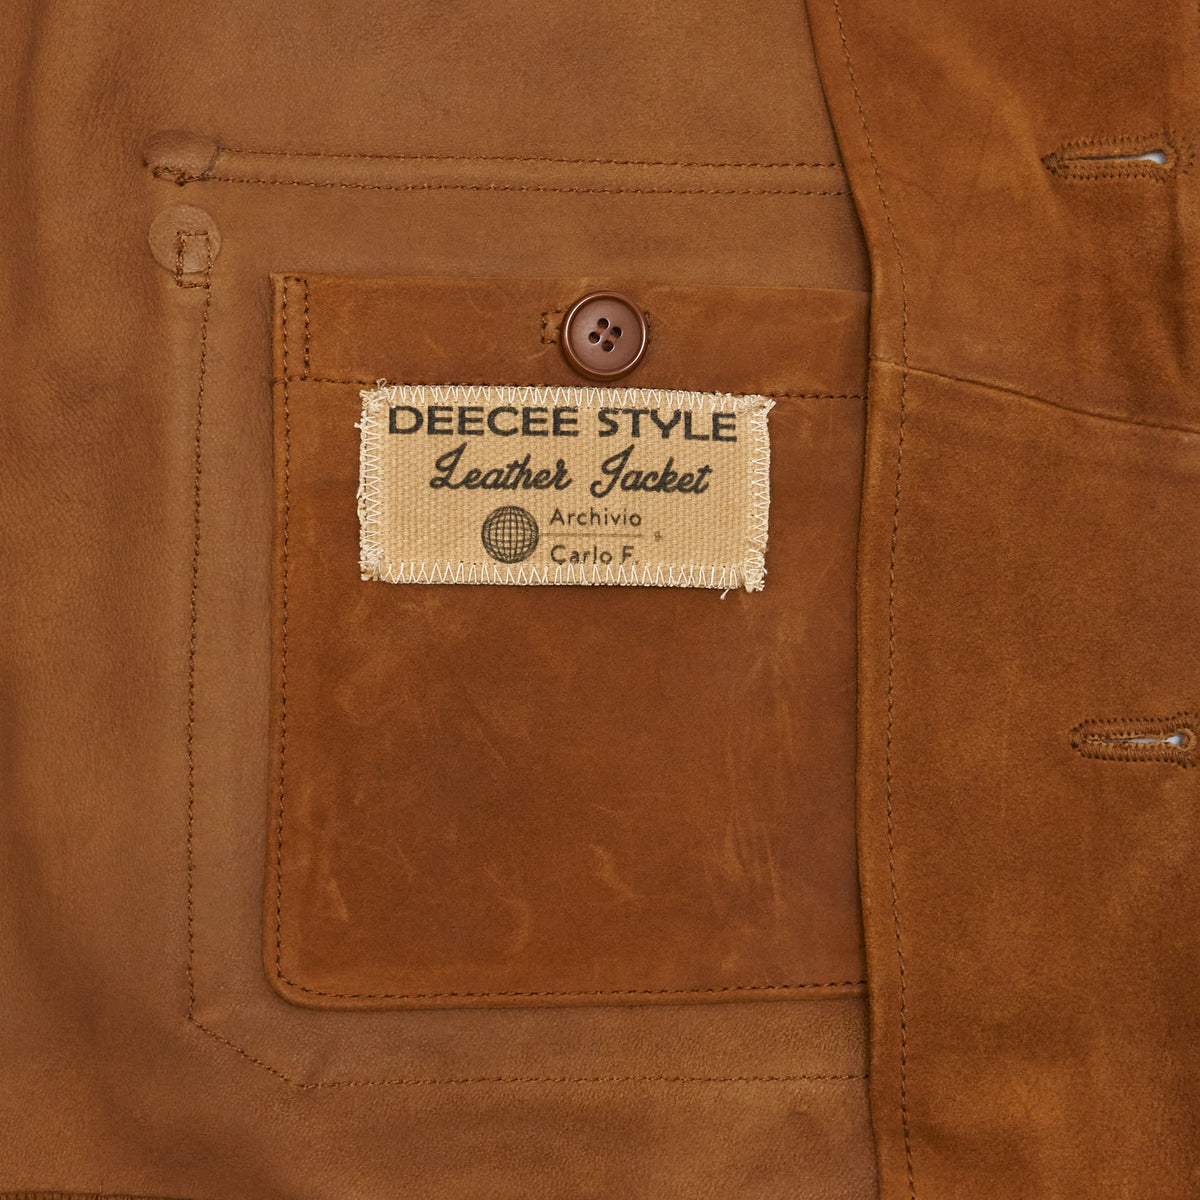 DeeCee style A1 Type Leather Jacket